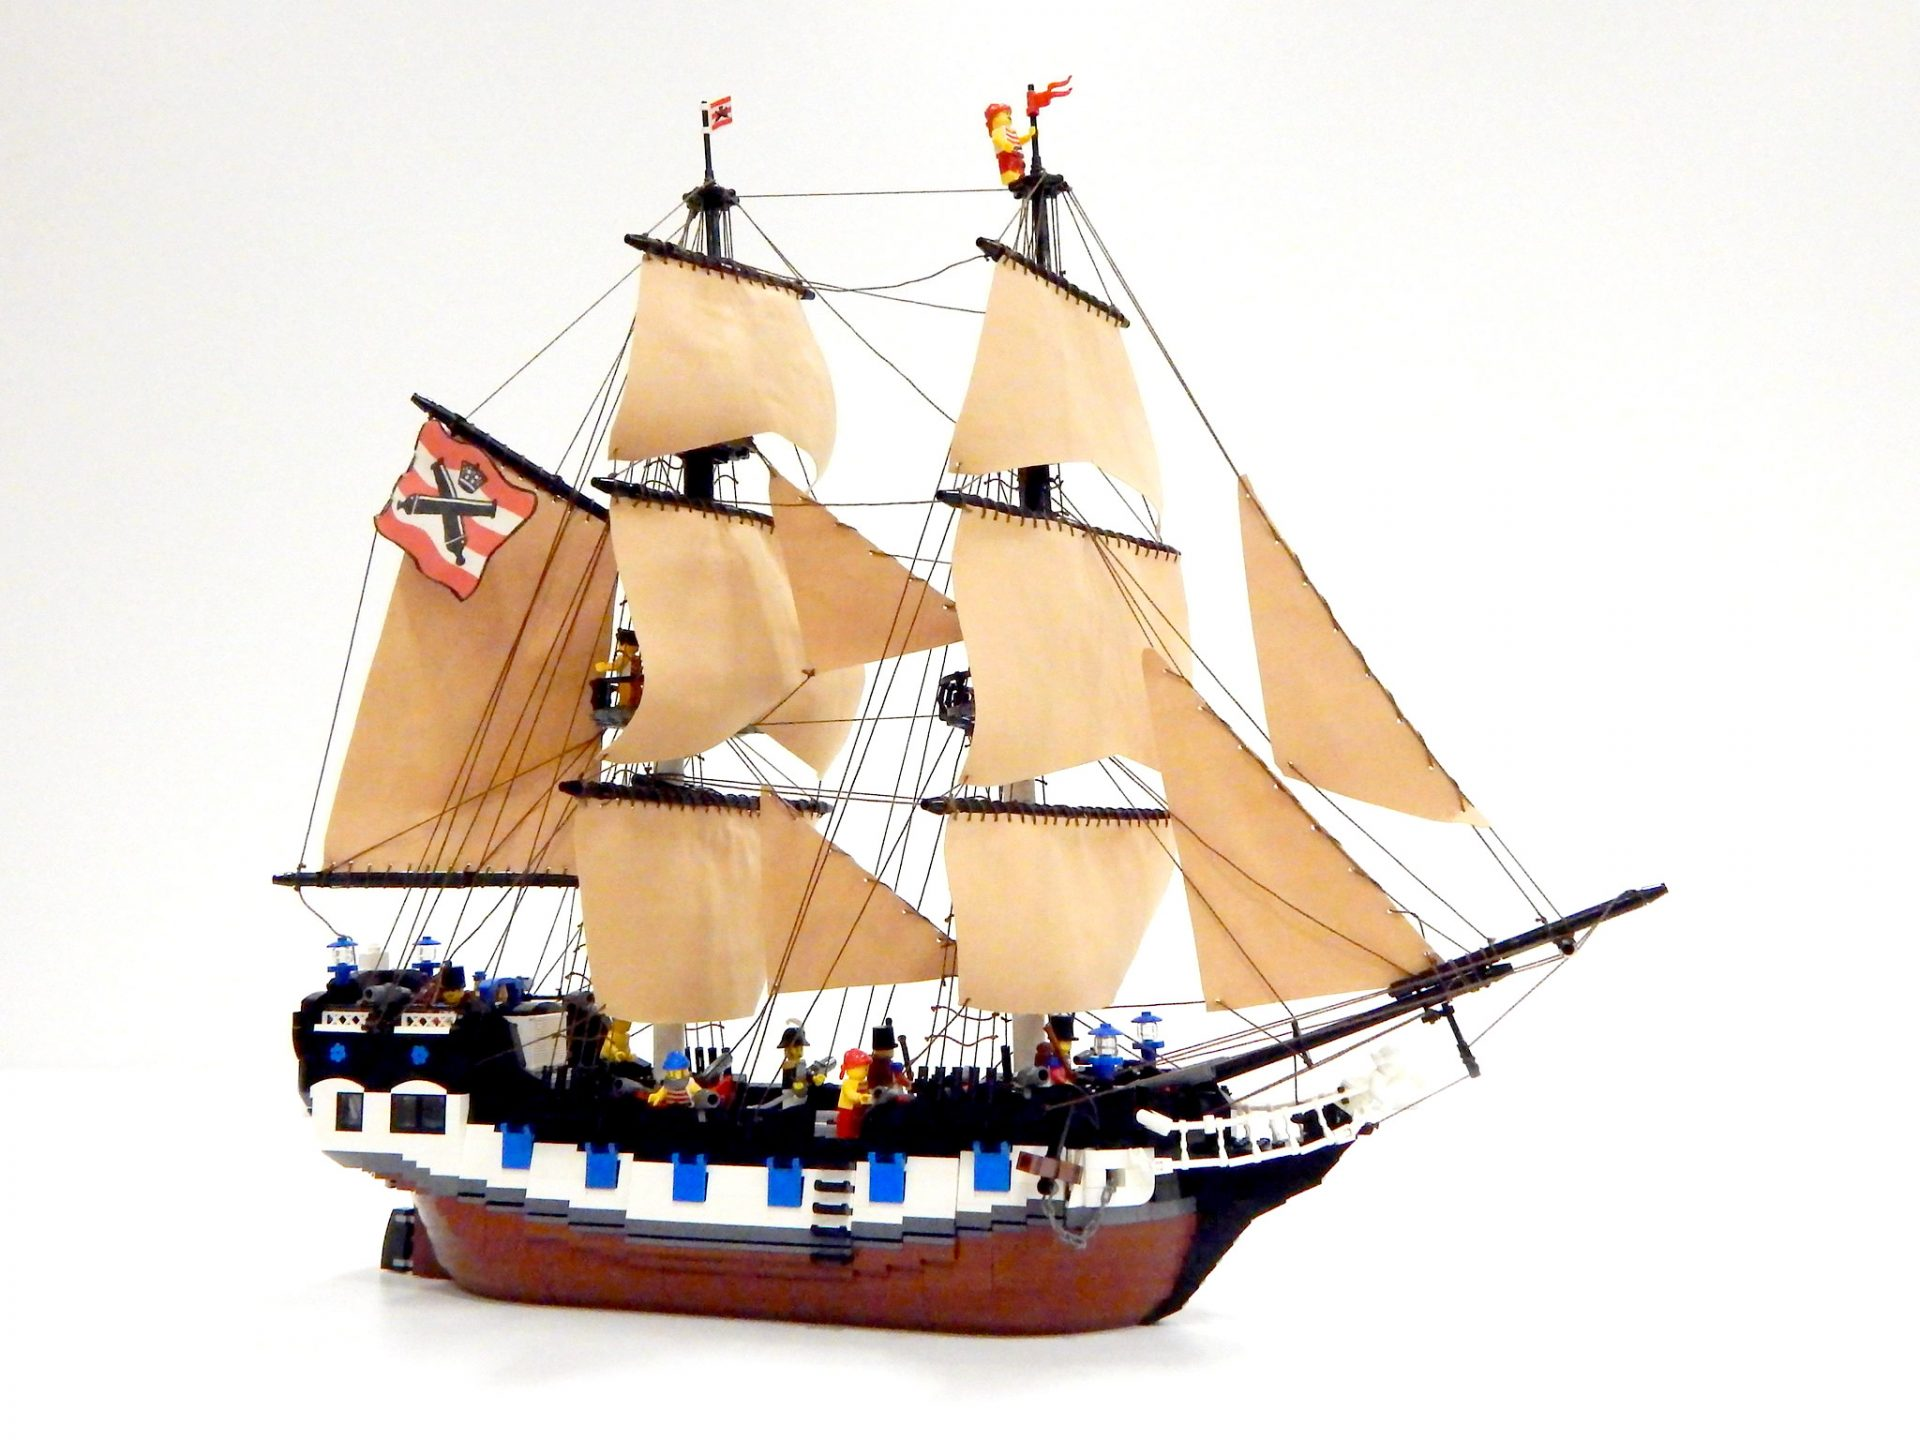 """Photo 1 of """"HMS White Card"""" by Elephant-Knight"""